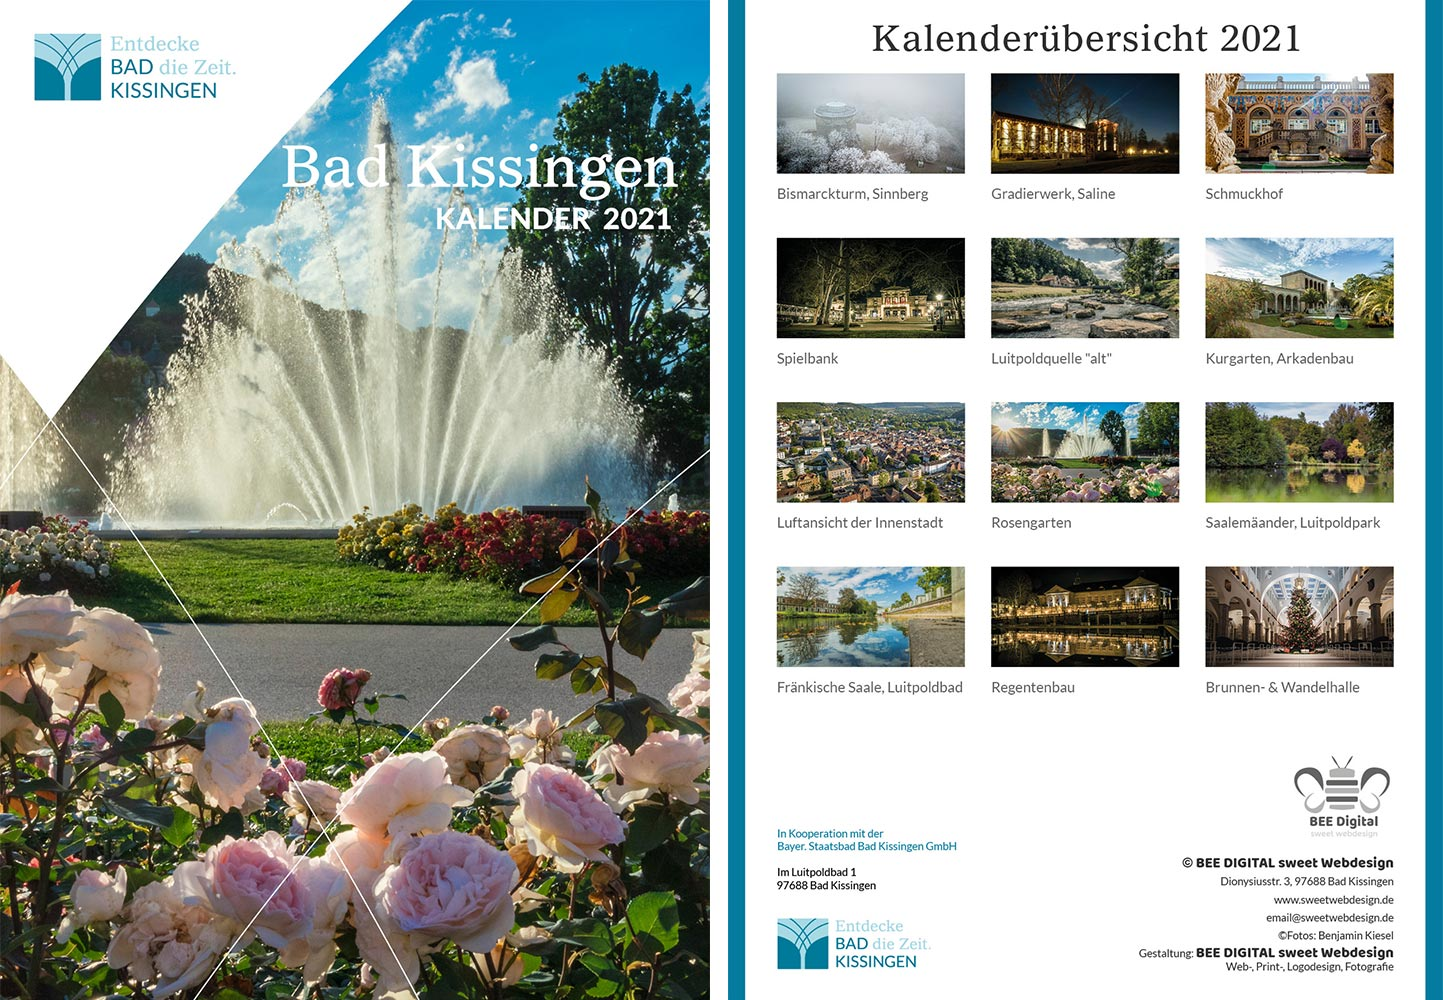 Der neue Bad Kissingen Kalender 2021